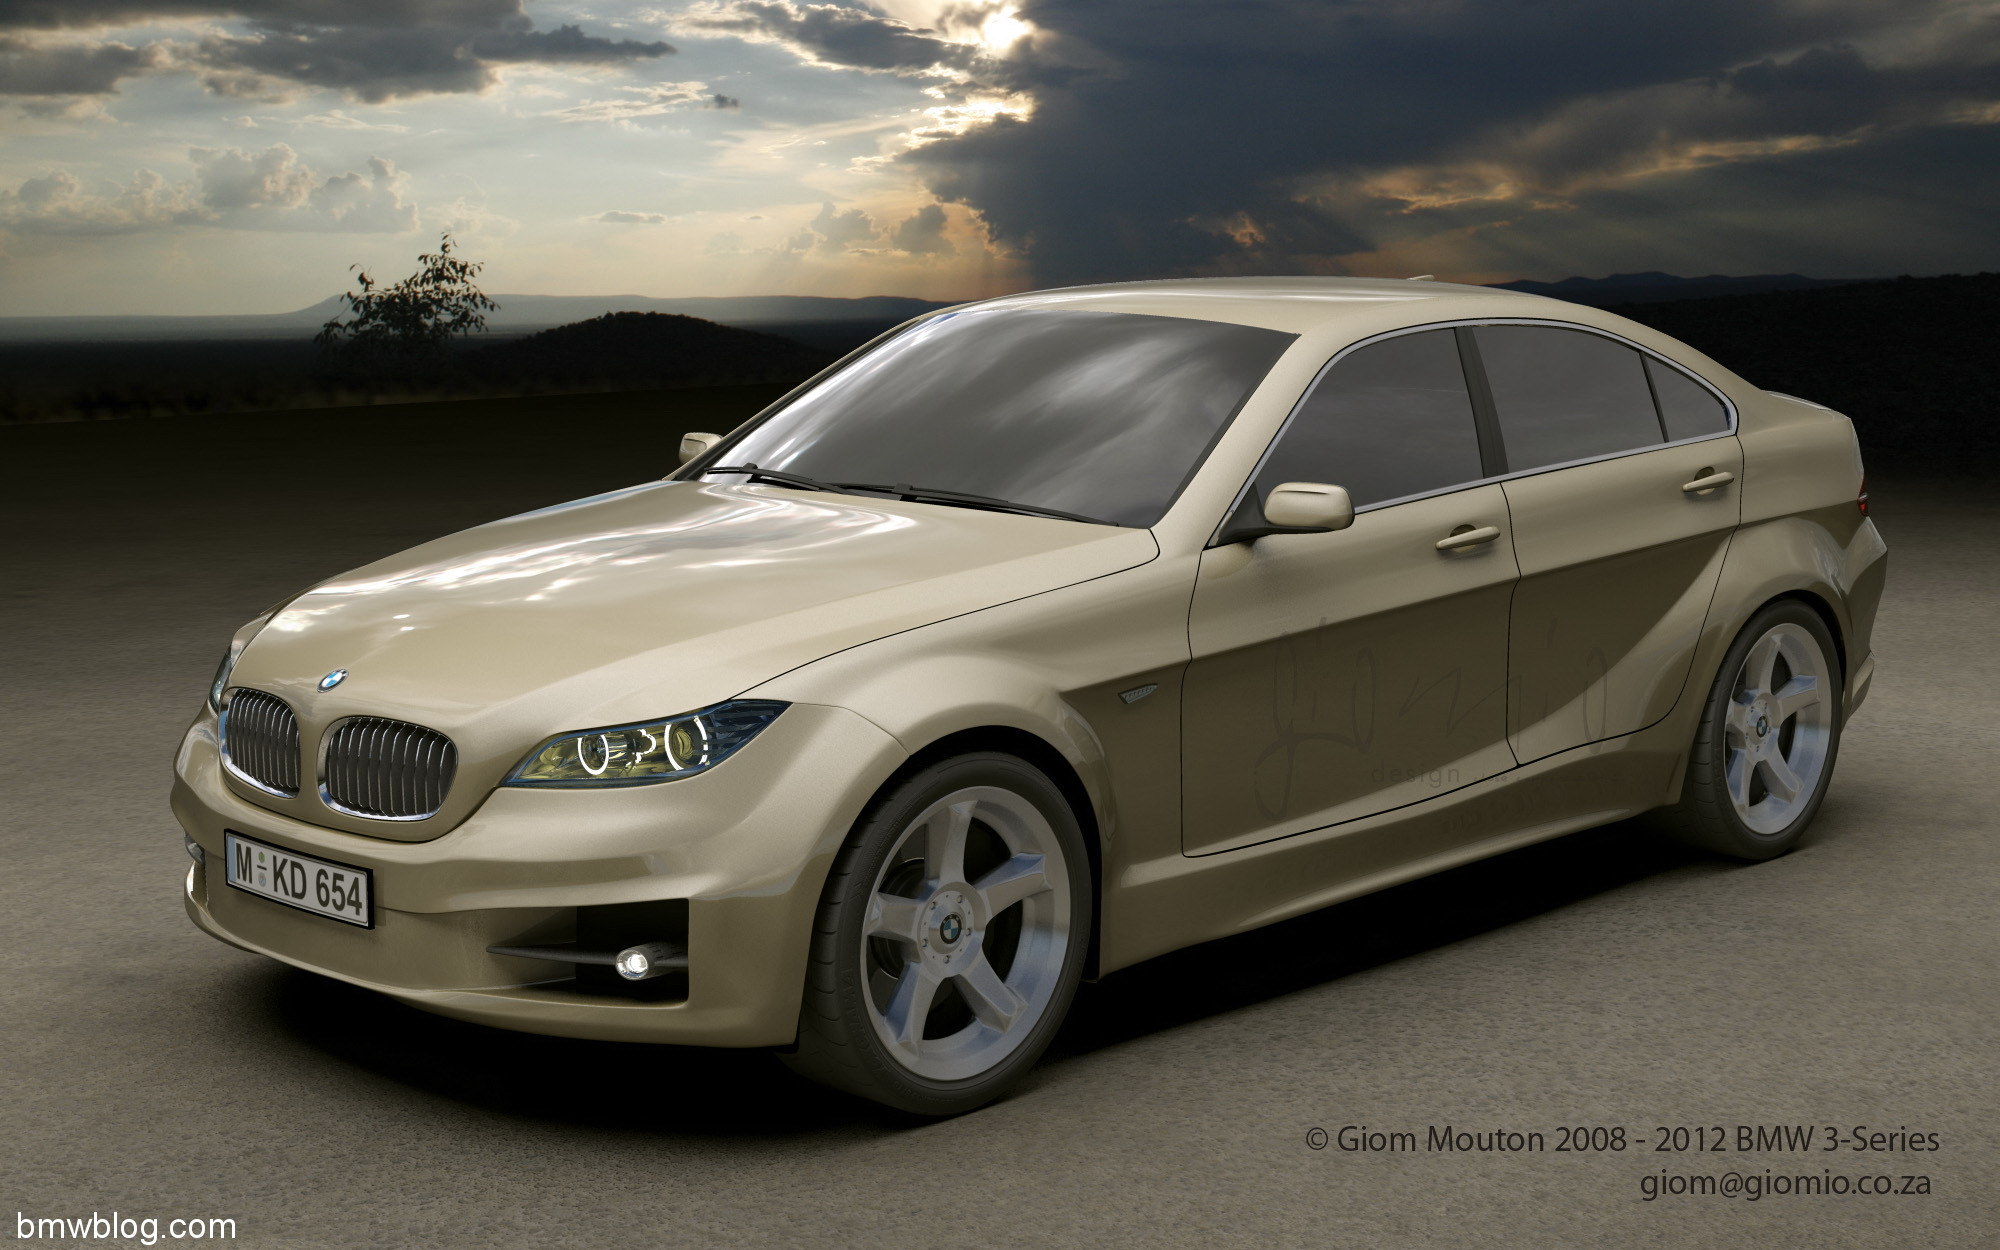 2012 BMW 3 Series. Within the next 2-3 series, the final design will be